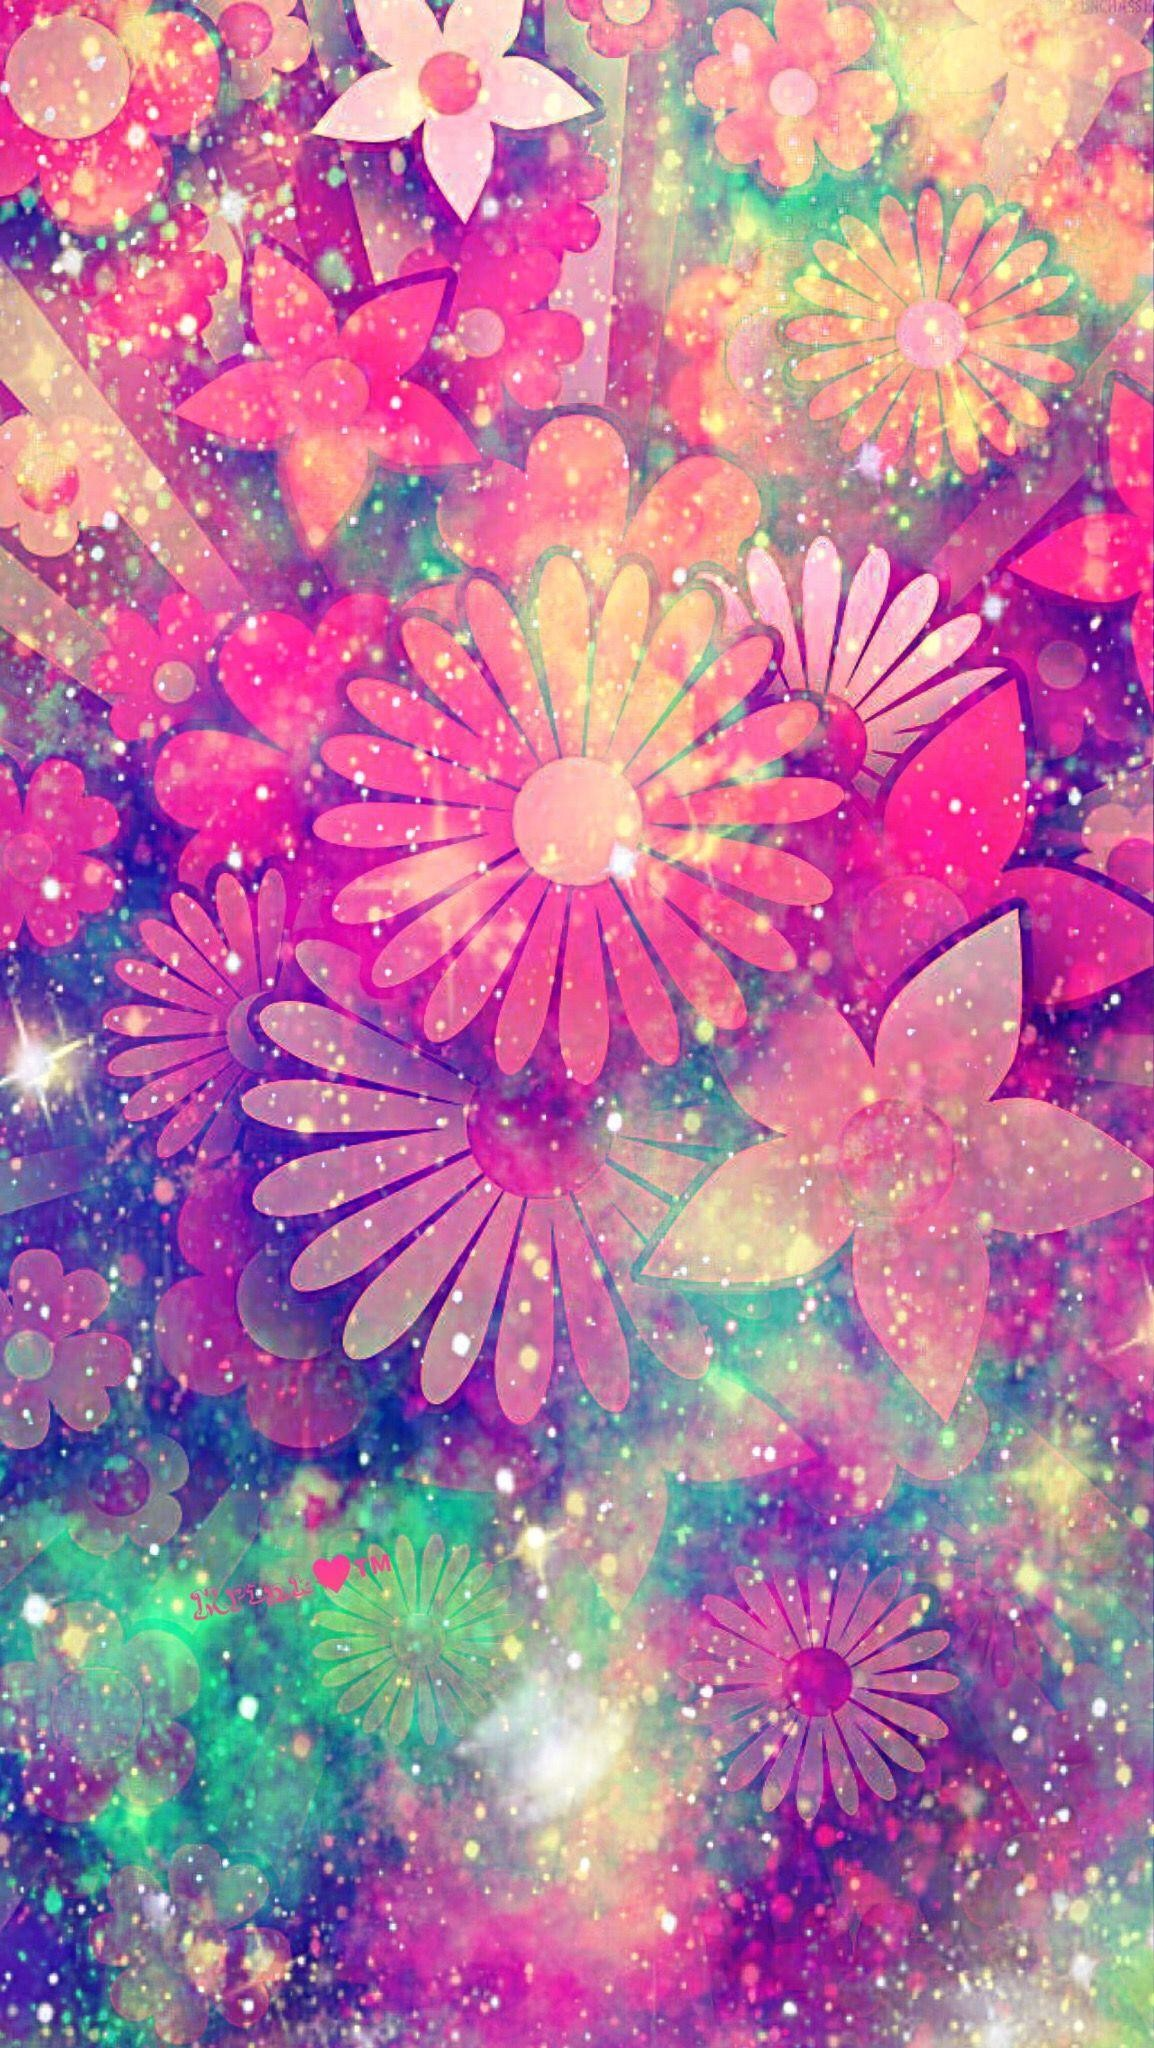 Galaxy Unicorn Glitter Cute Wallpapers Download Free